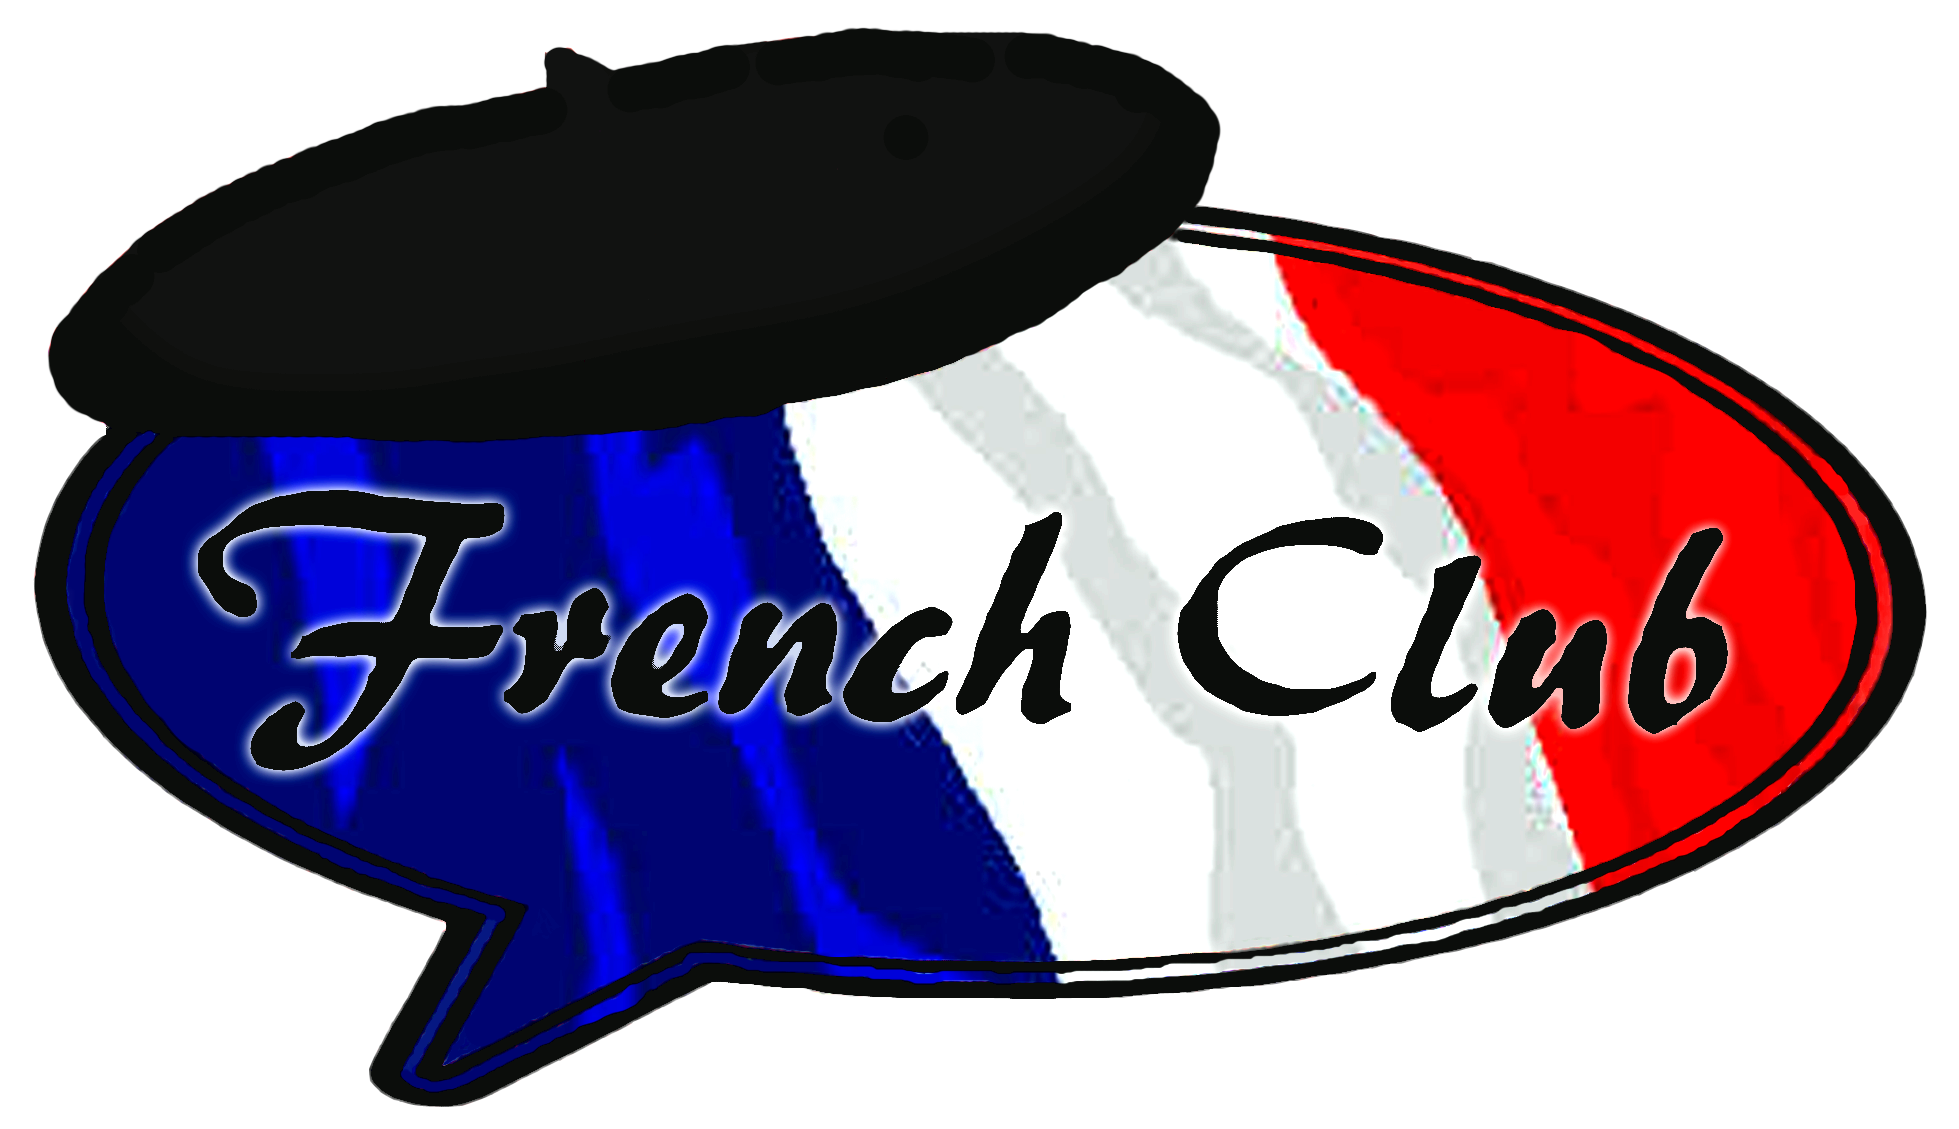 French club serve as French